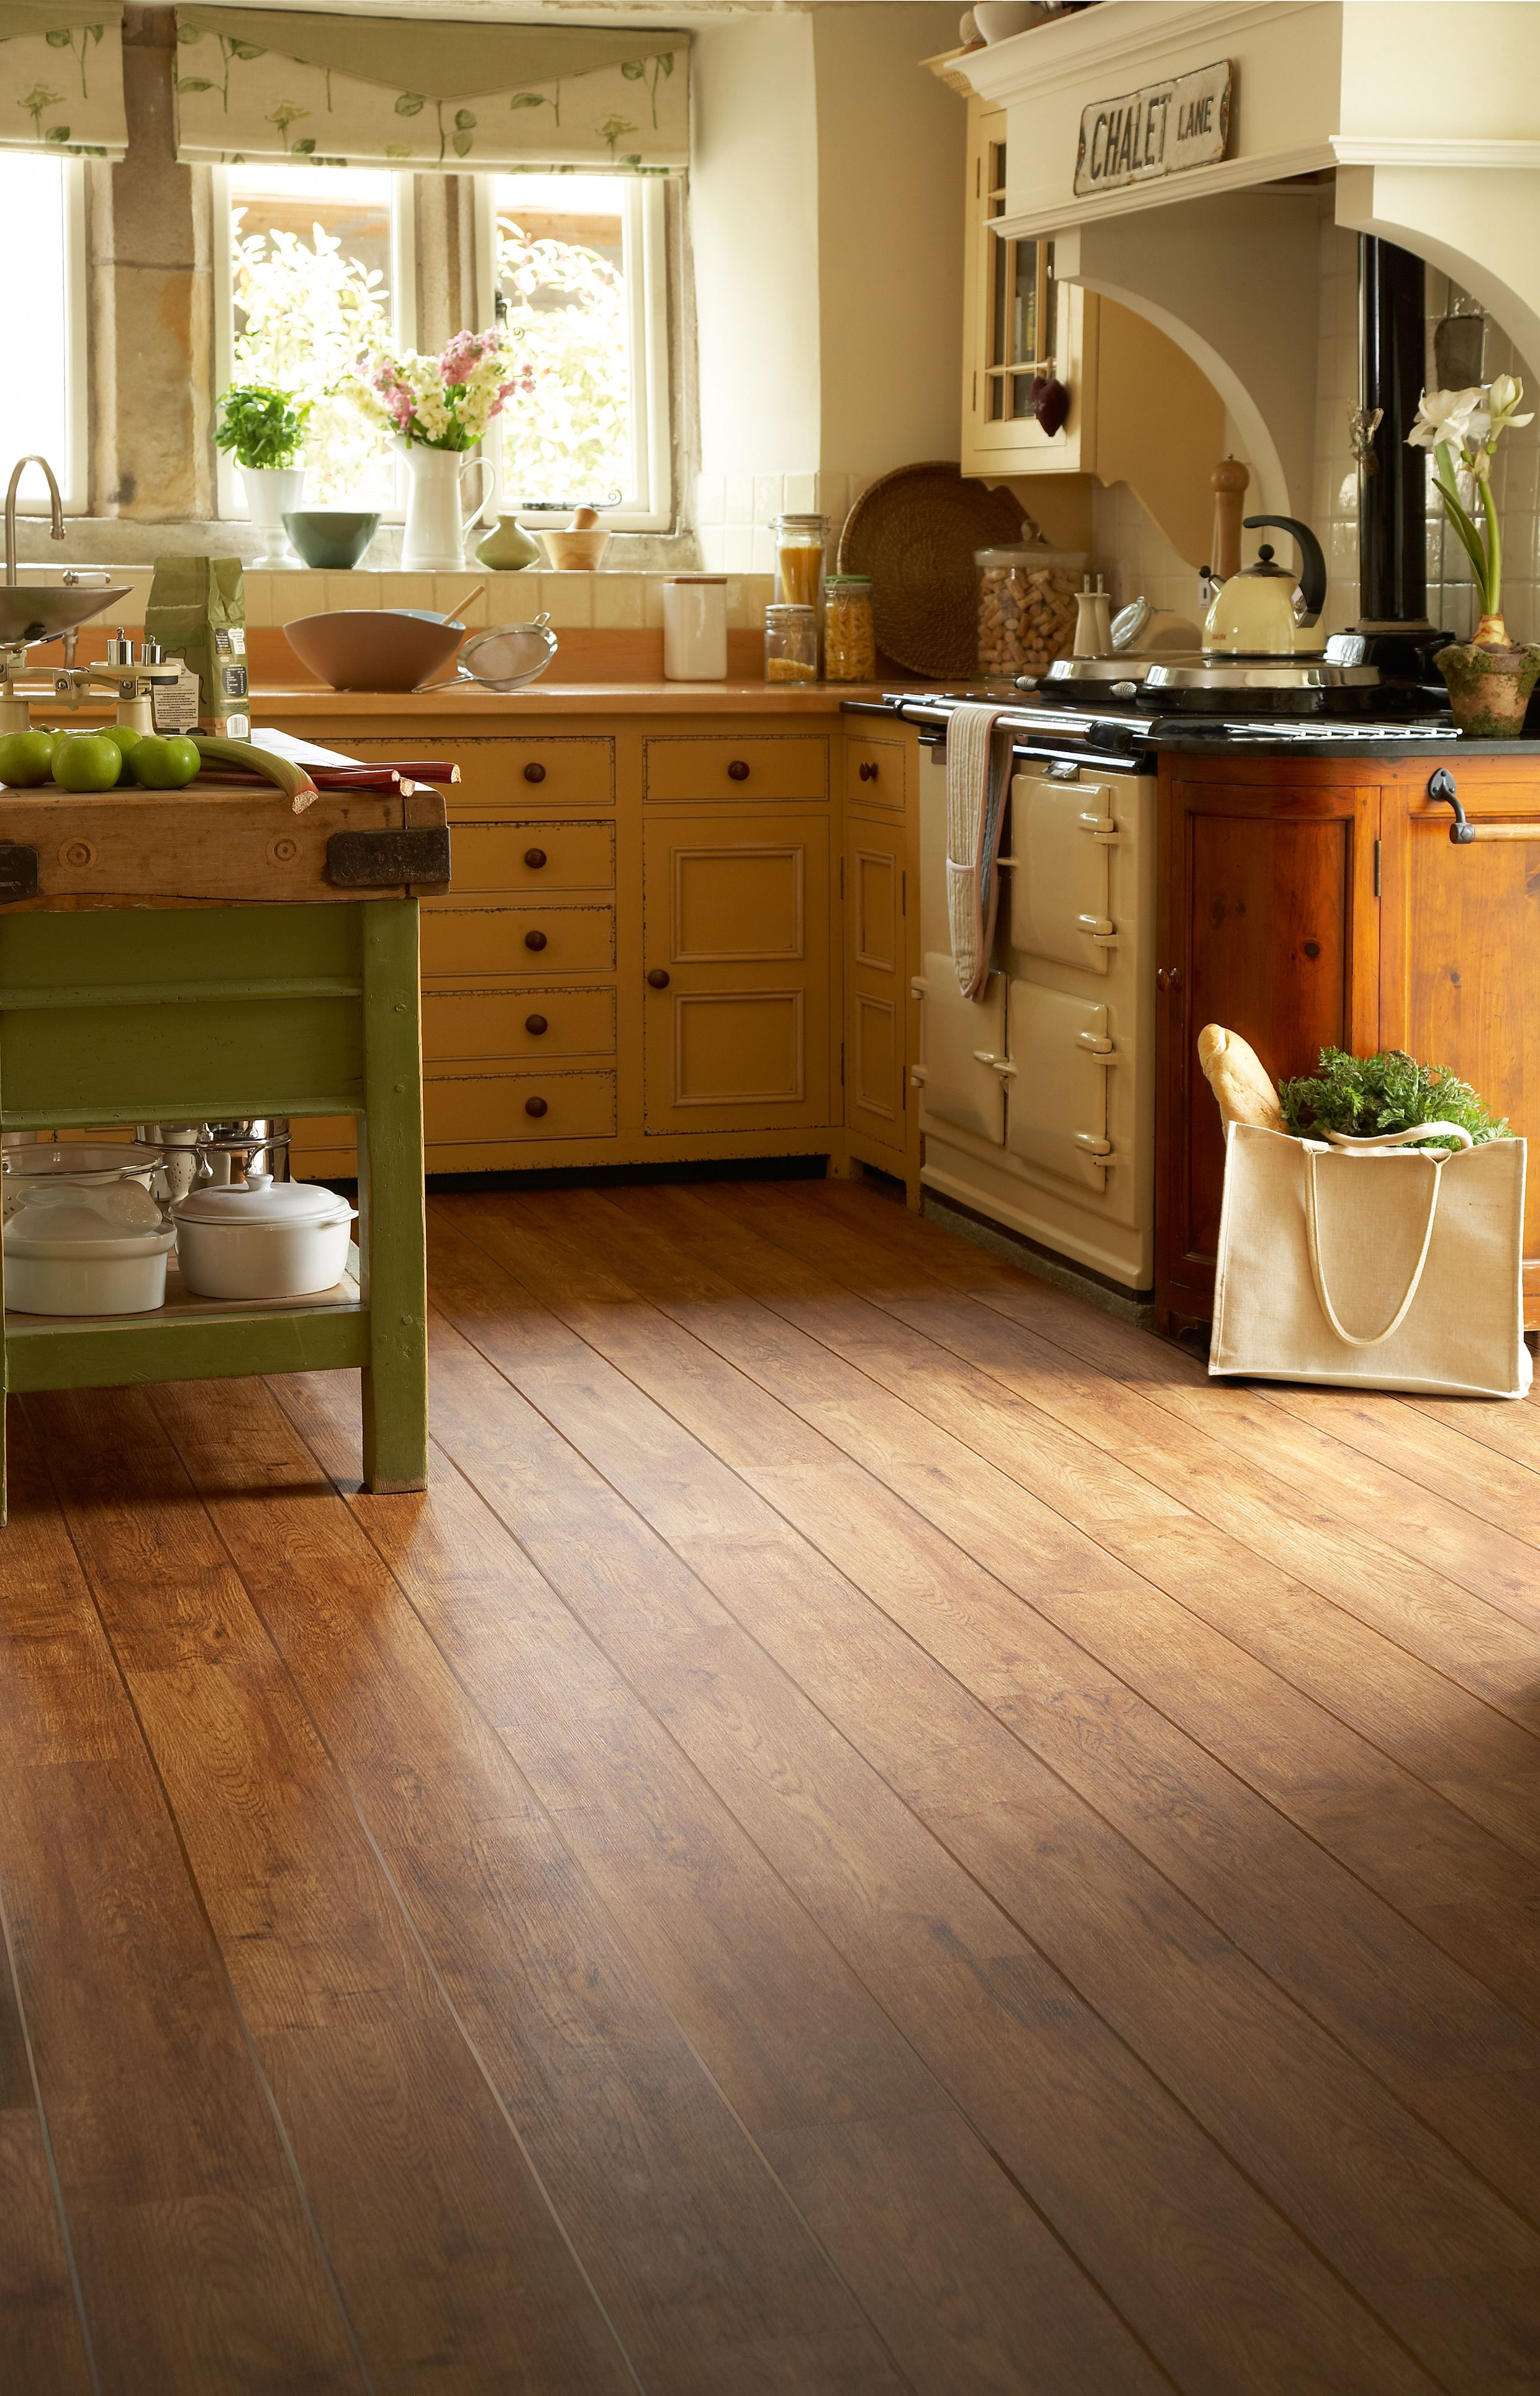 Polyflor Camaro Wood Flooring 2220 quaint cottagestyle